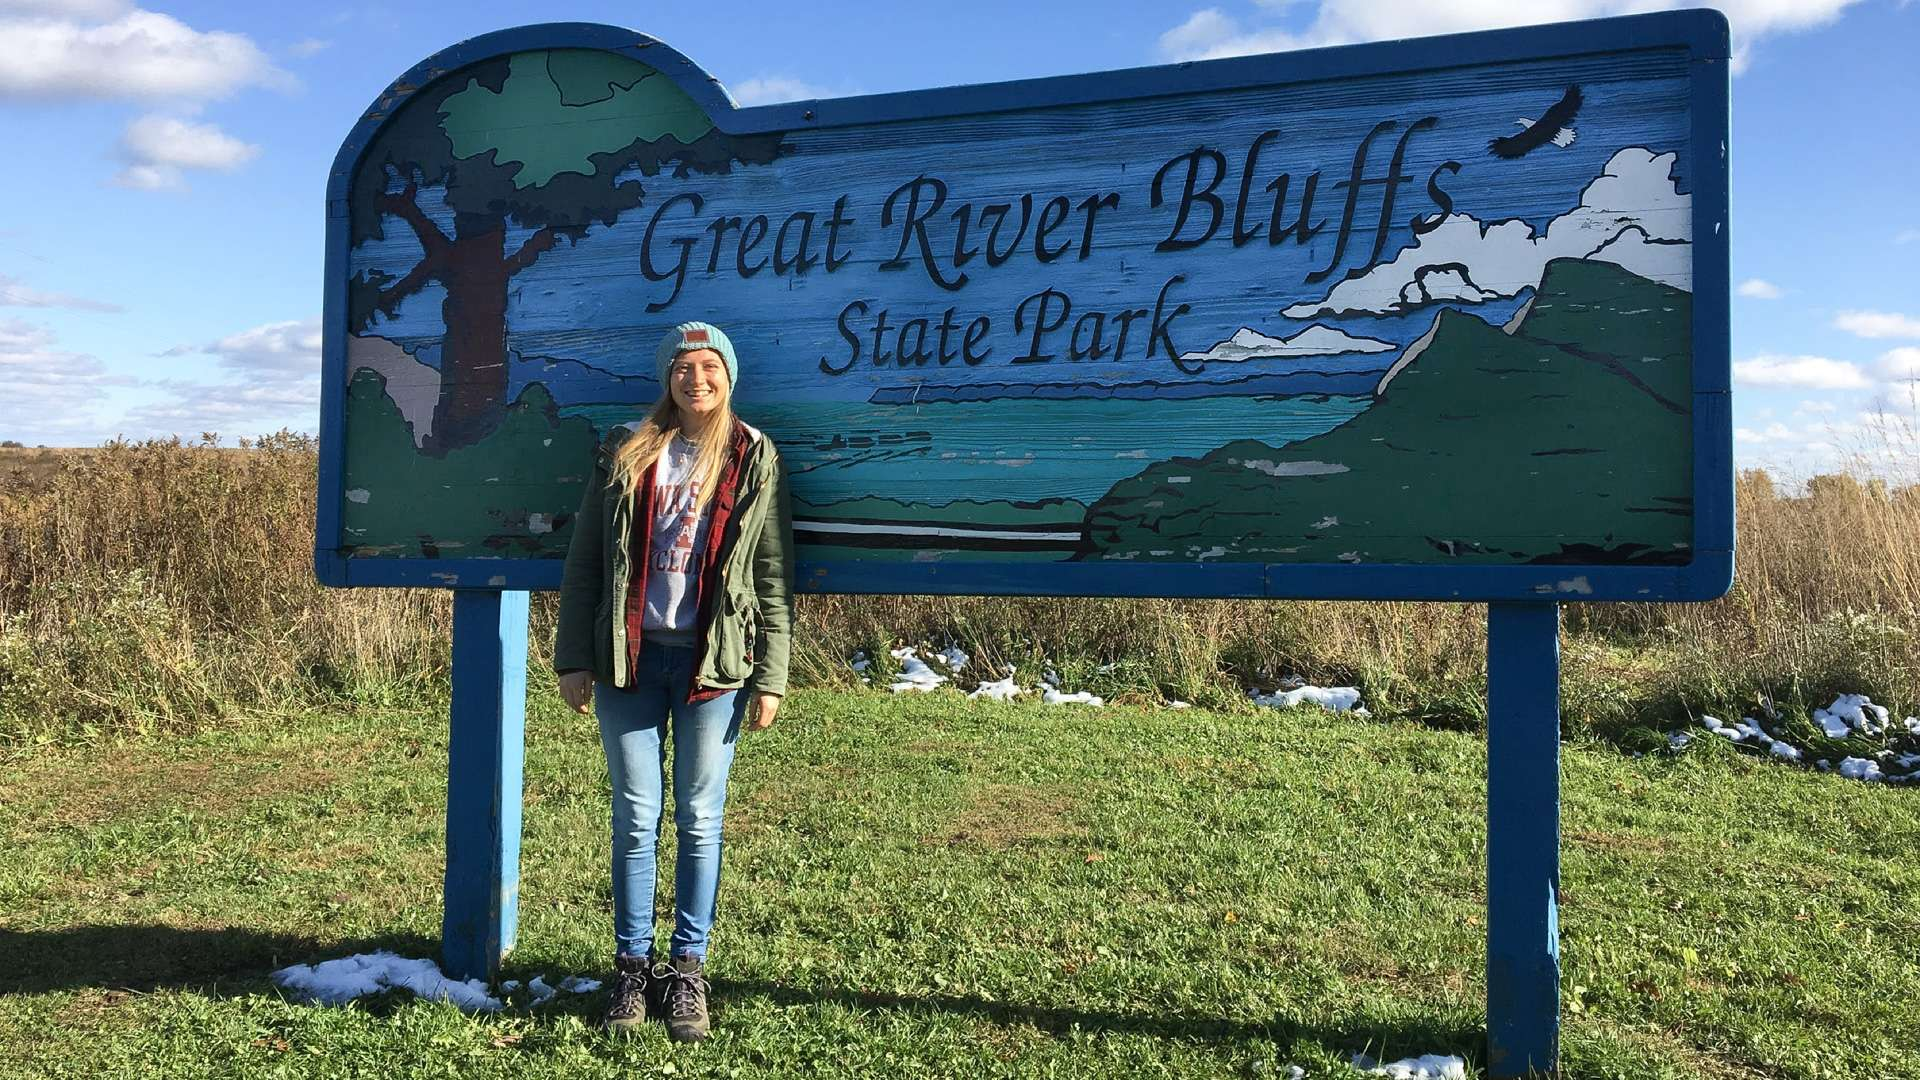 A woman poses in front of the sign for Great River Bluff State Park